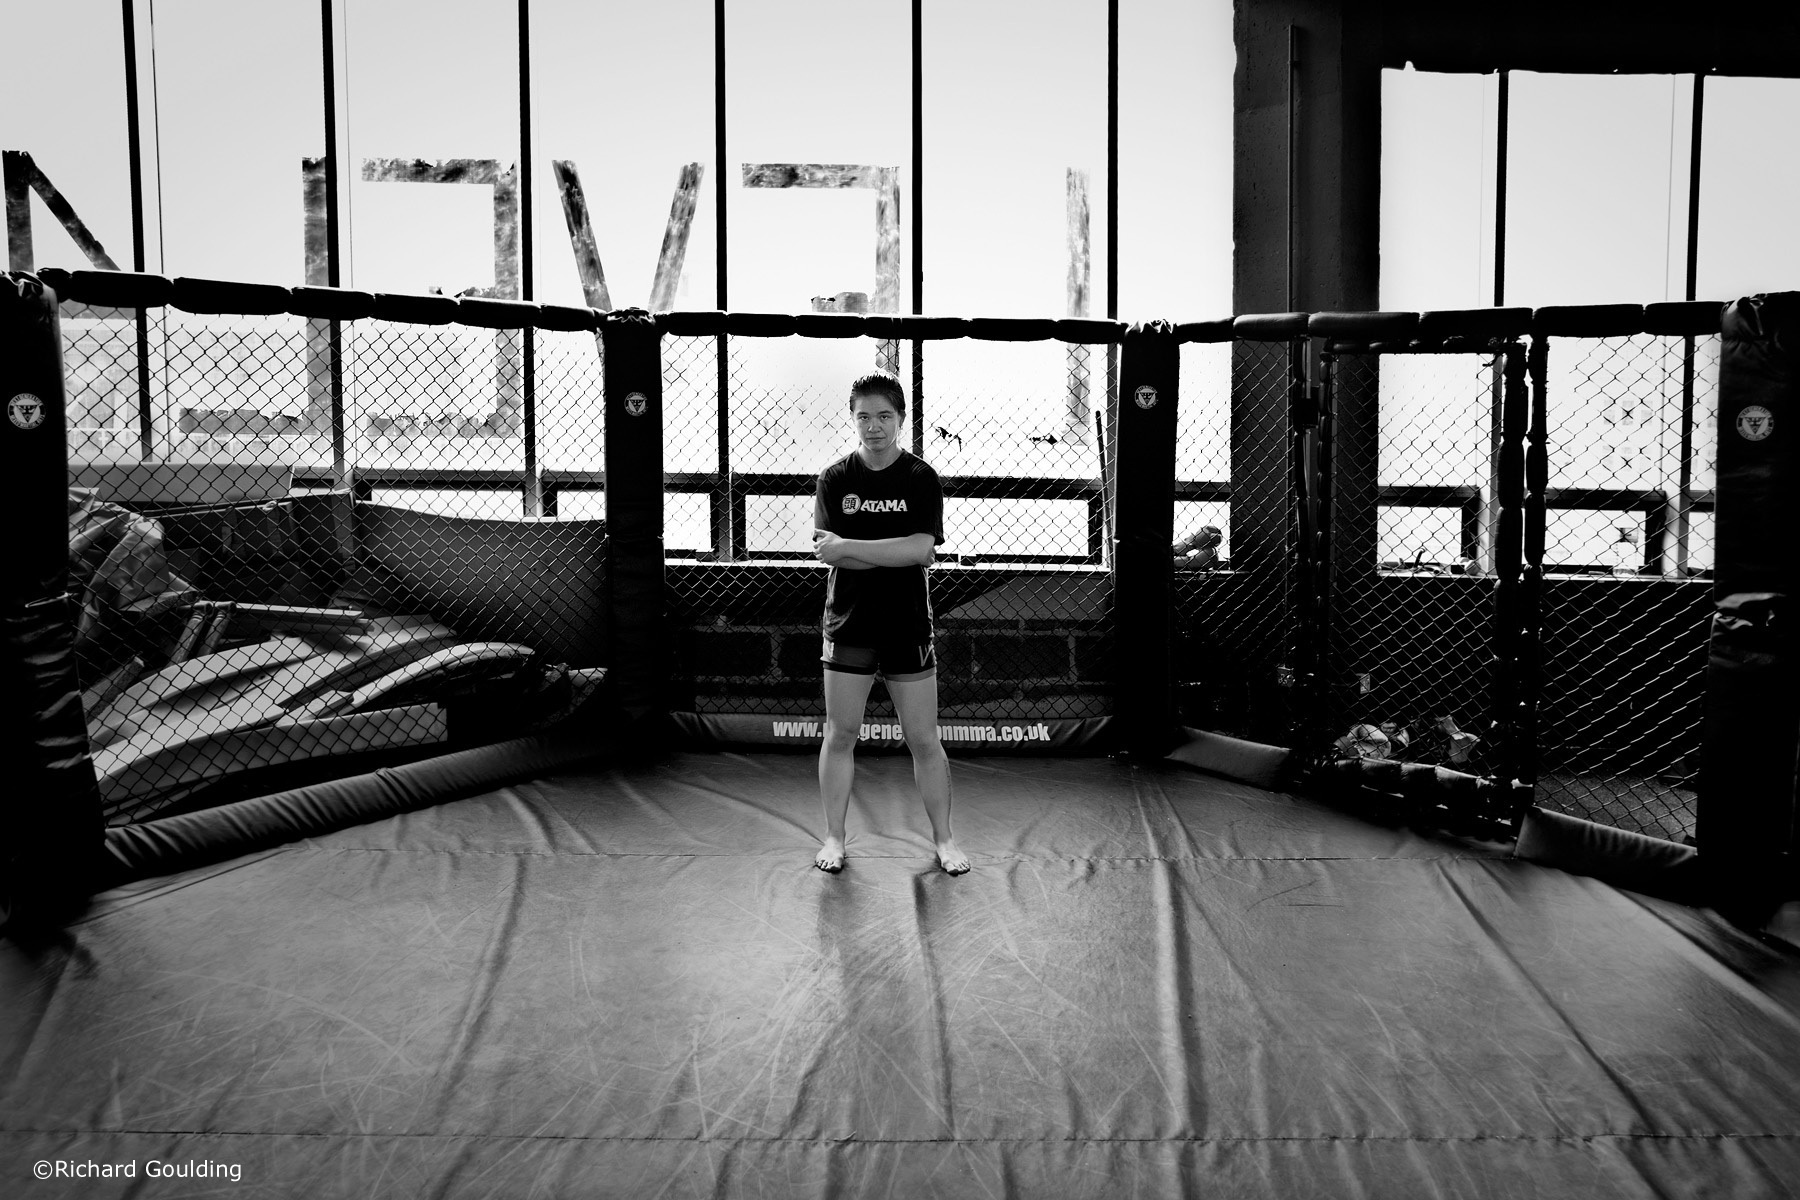 Rosemary Ann Sexton PhD is a mathematician, athlete, sports therapist, osteopath, writer and musician. She had a distinguished career in mixed martial arts (MMA), from which she retired in 2014.